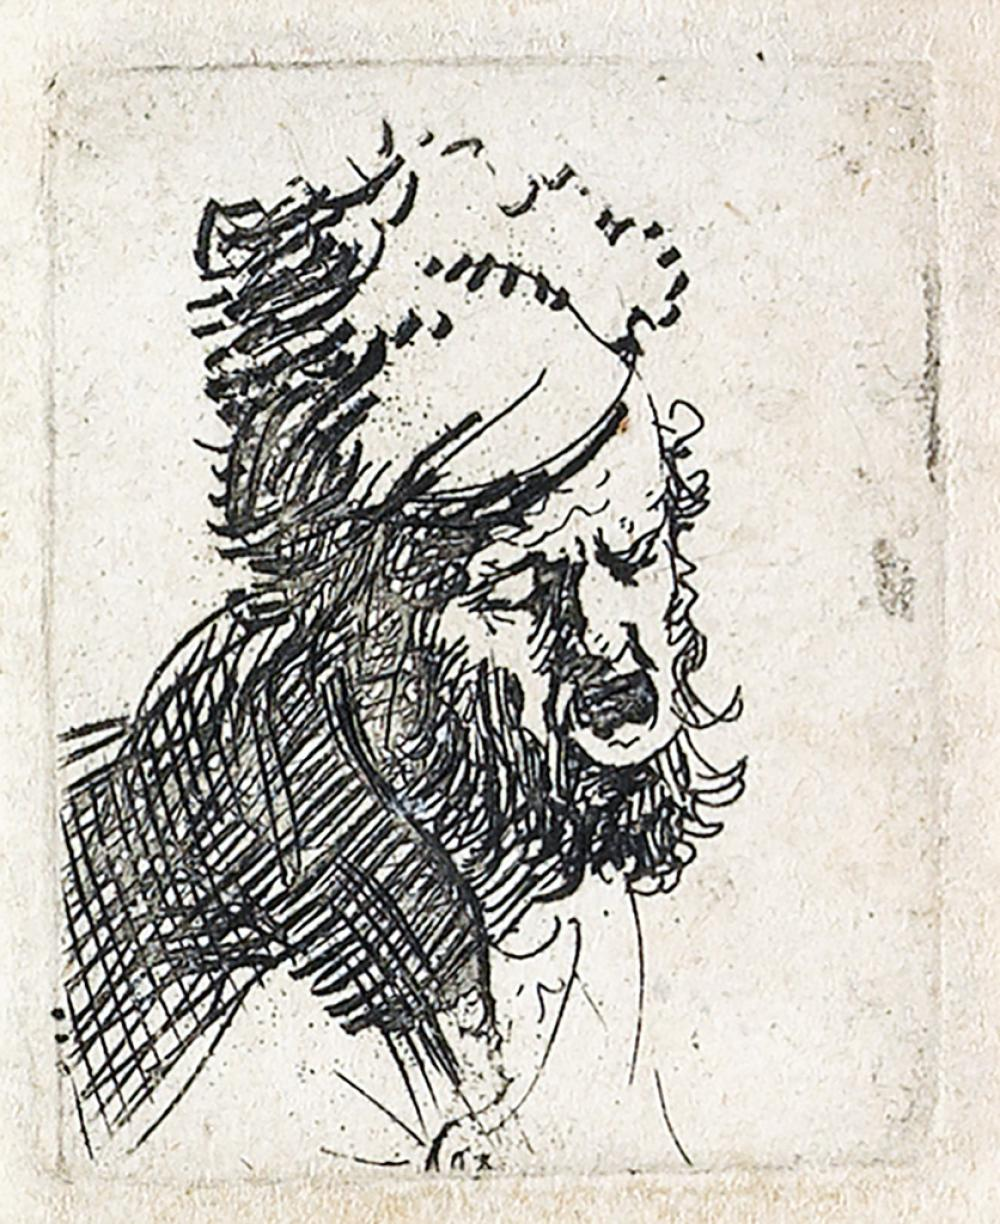 REMBRANDT VAN RIJN Head of a Man in a Fur Cap, crying out.